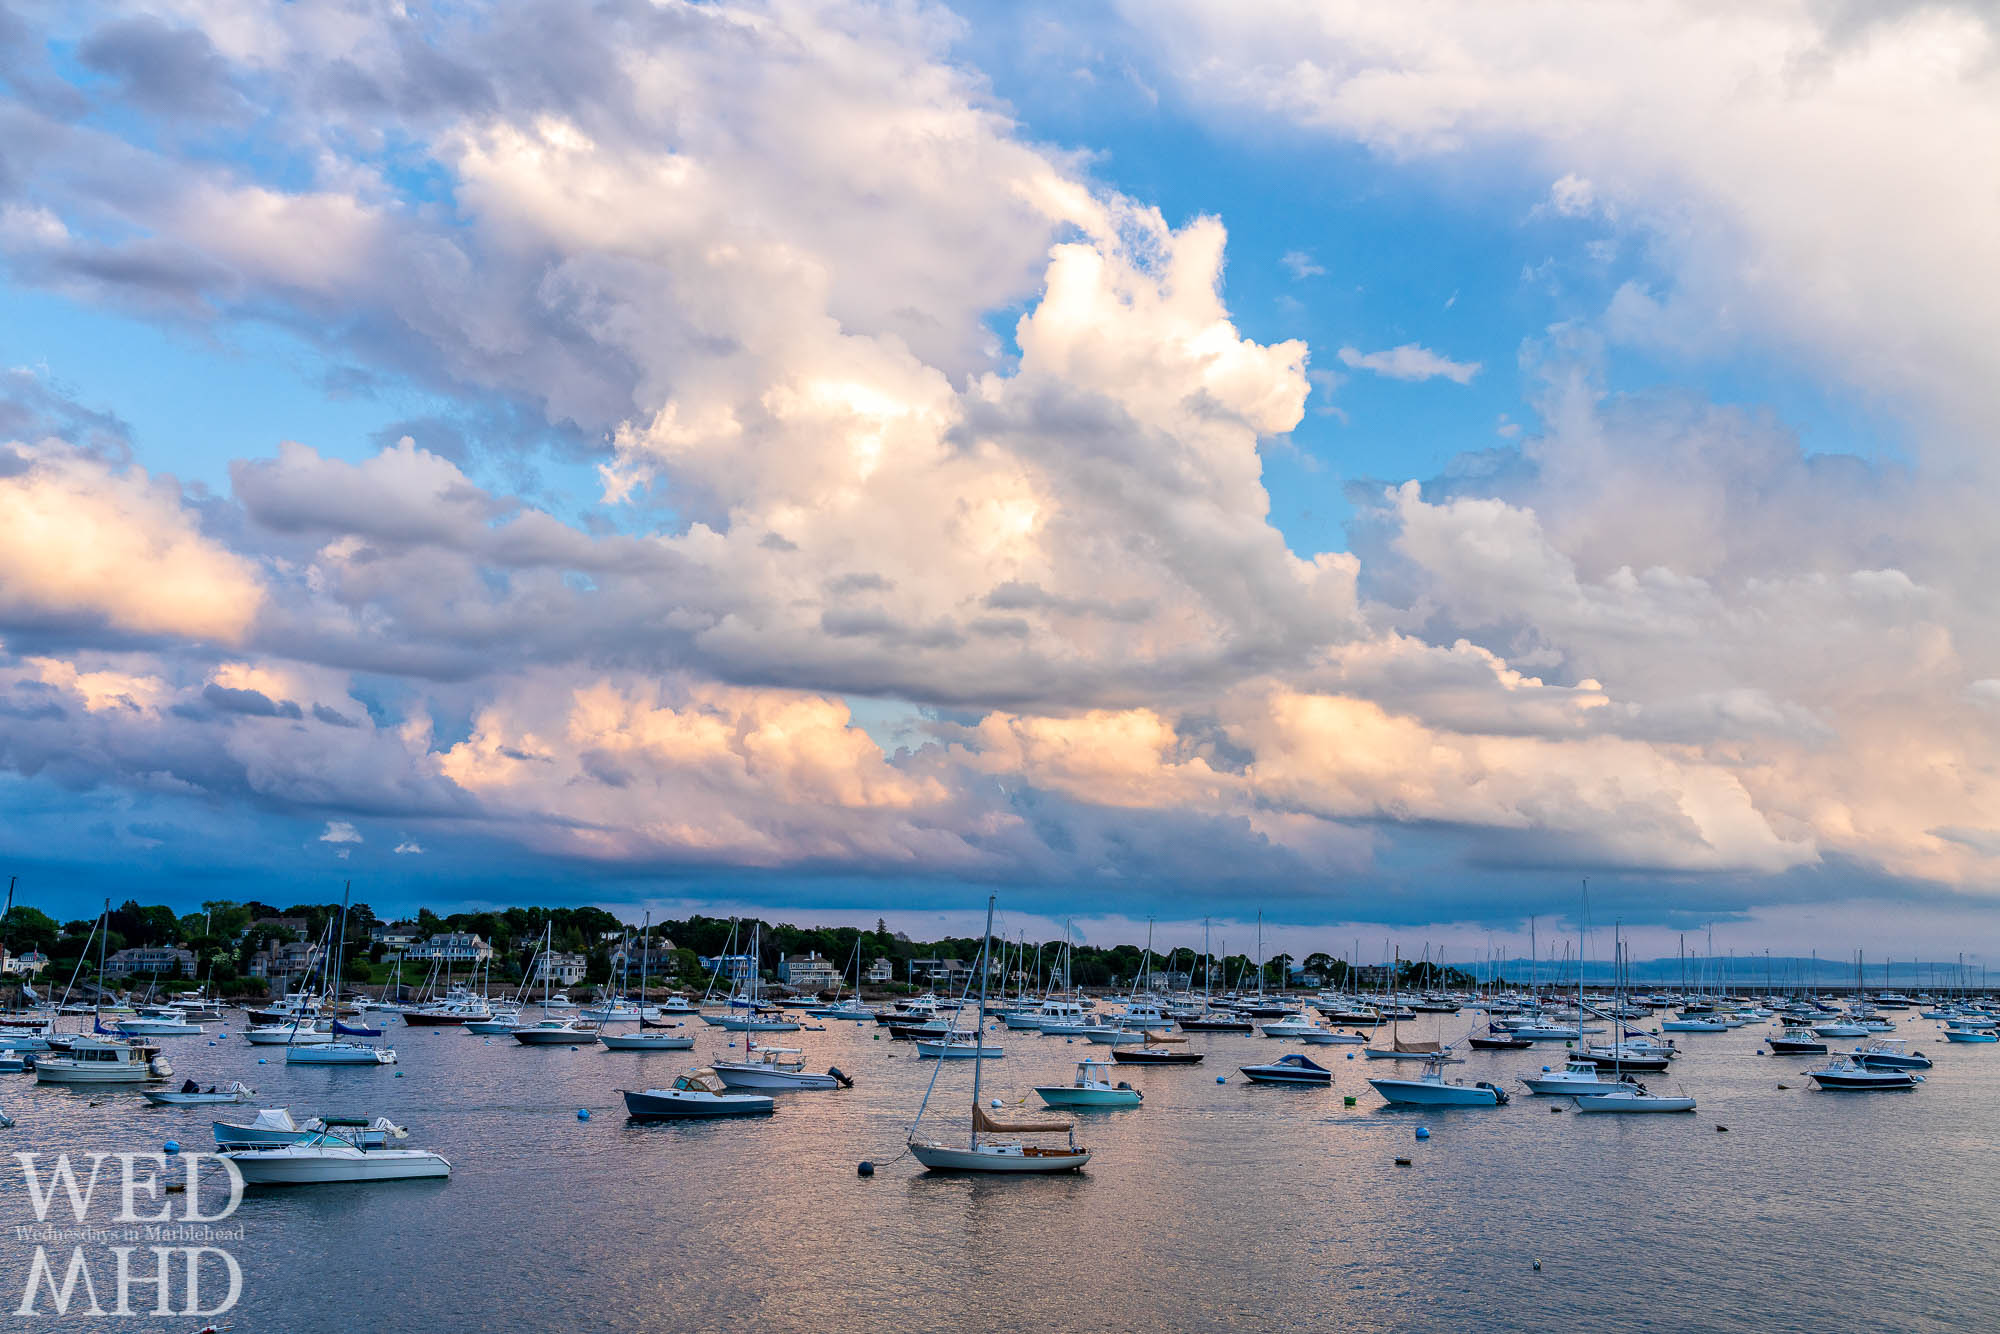 We haven't won yet but Marblehead really should be voted the best harbor in America with views like this